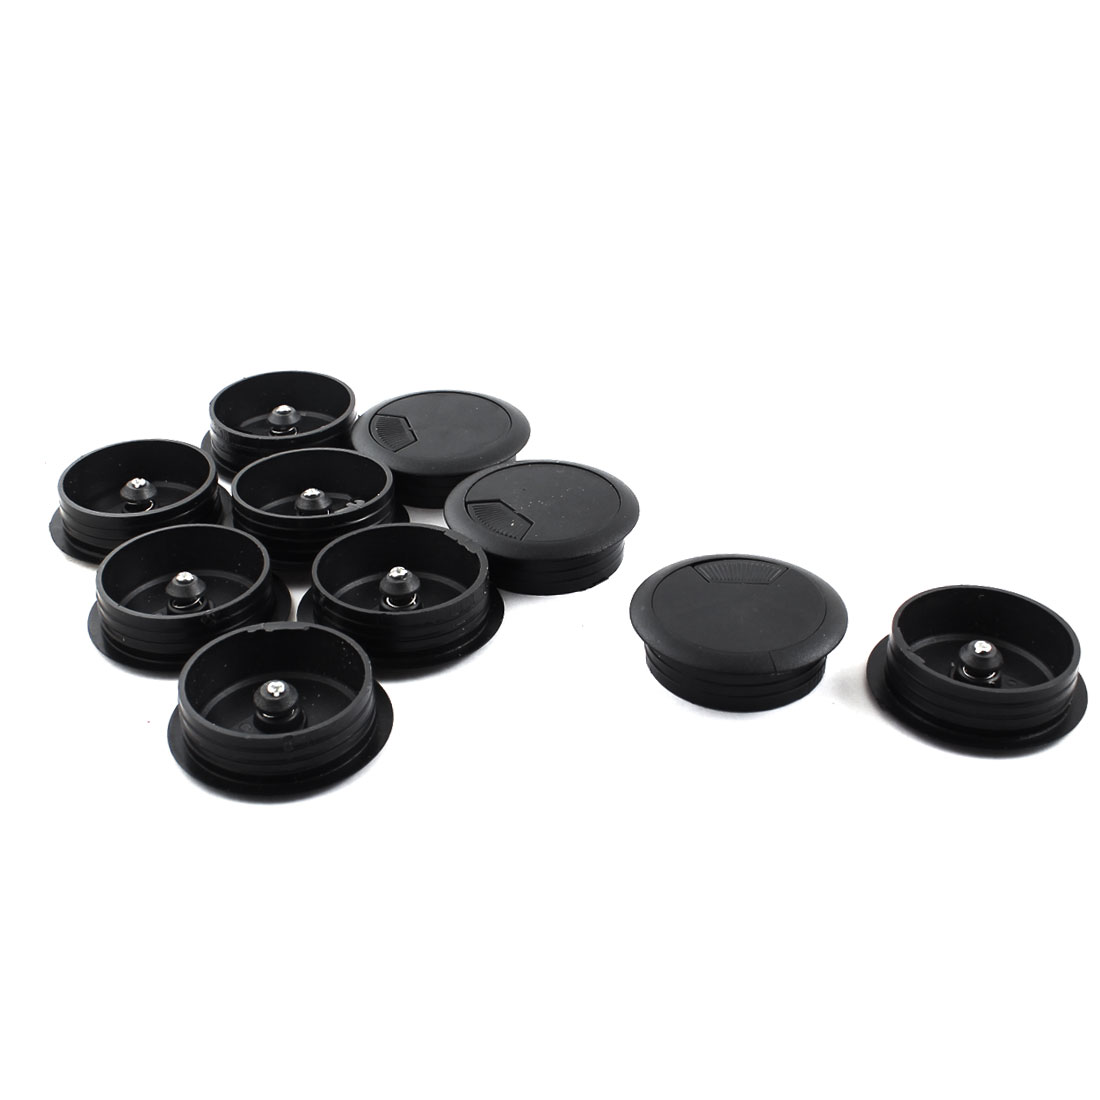 10Pcs 50mm Thread Black Round Plastic Computer Desk Tidy Computer Desk Cable Hole Cover 60mm